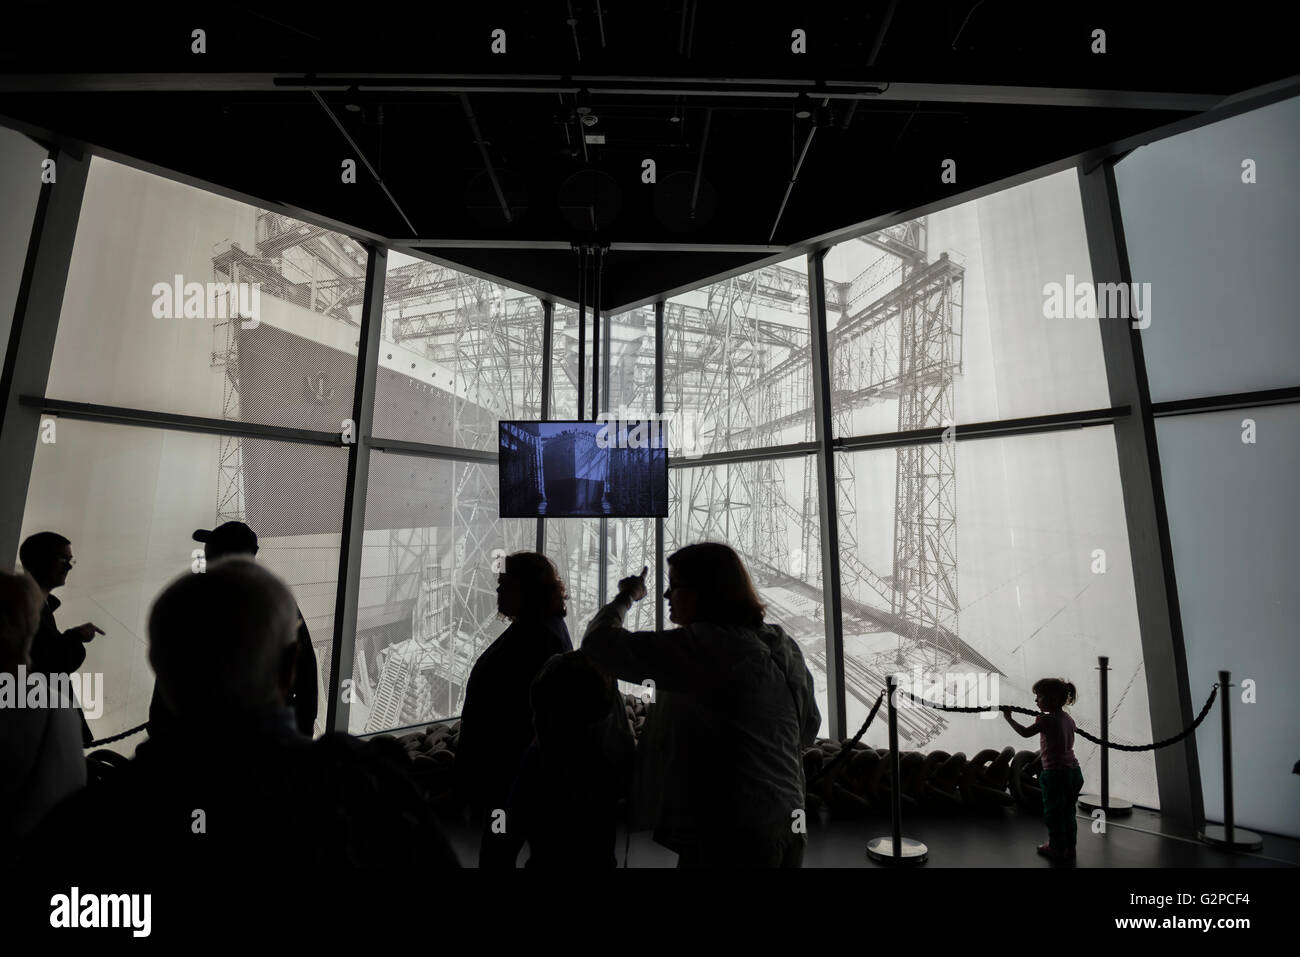 The launch. Titanic Belfast. The Titanic Experience. Northern Ireland. Europe - Stock Image